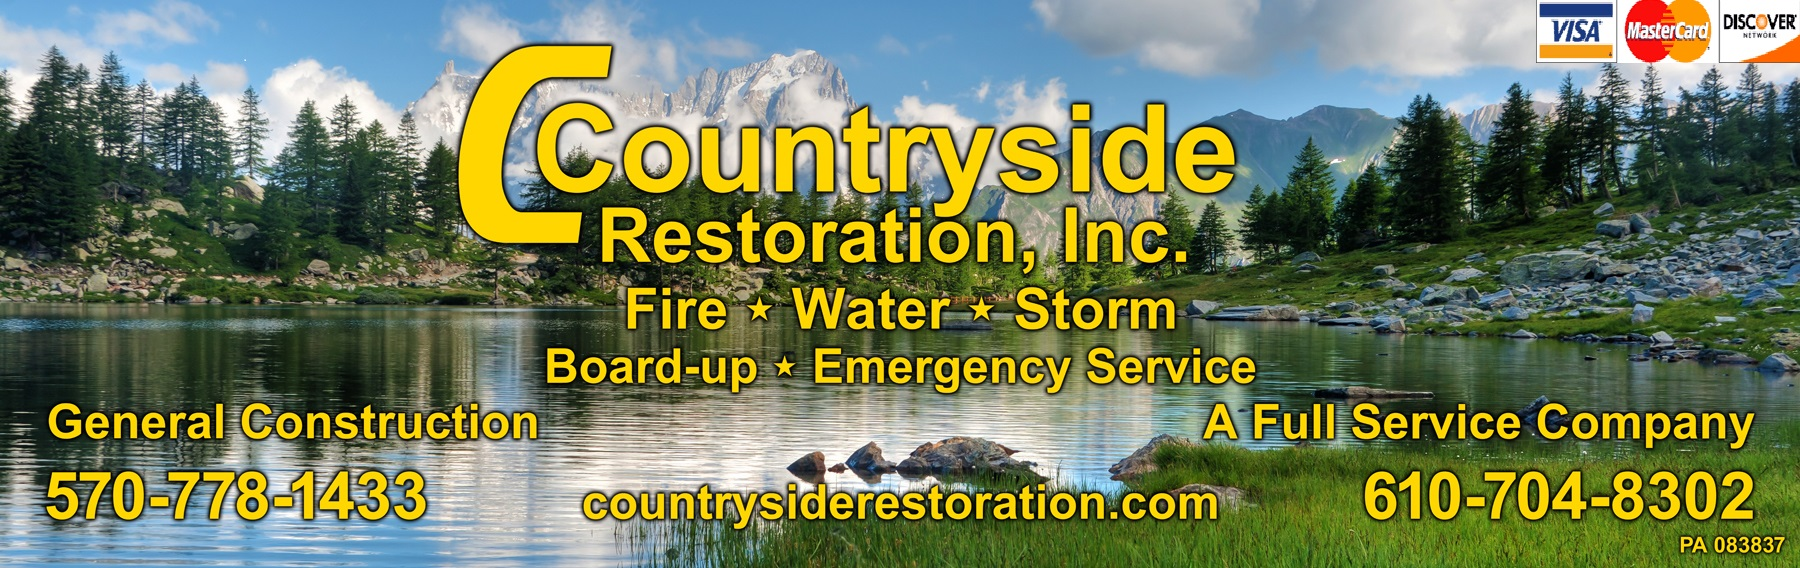 Welcome to Countryside Restoration